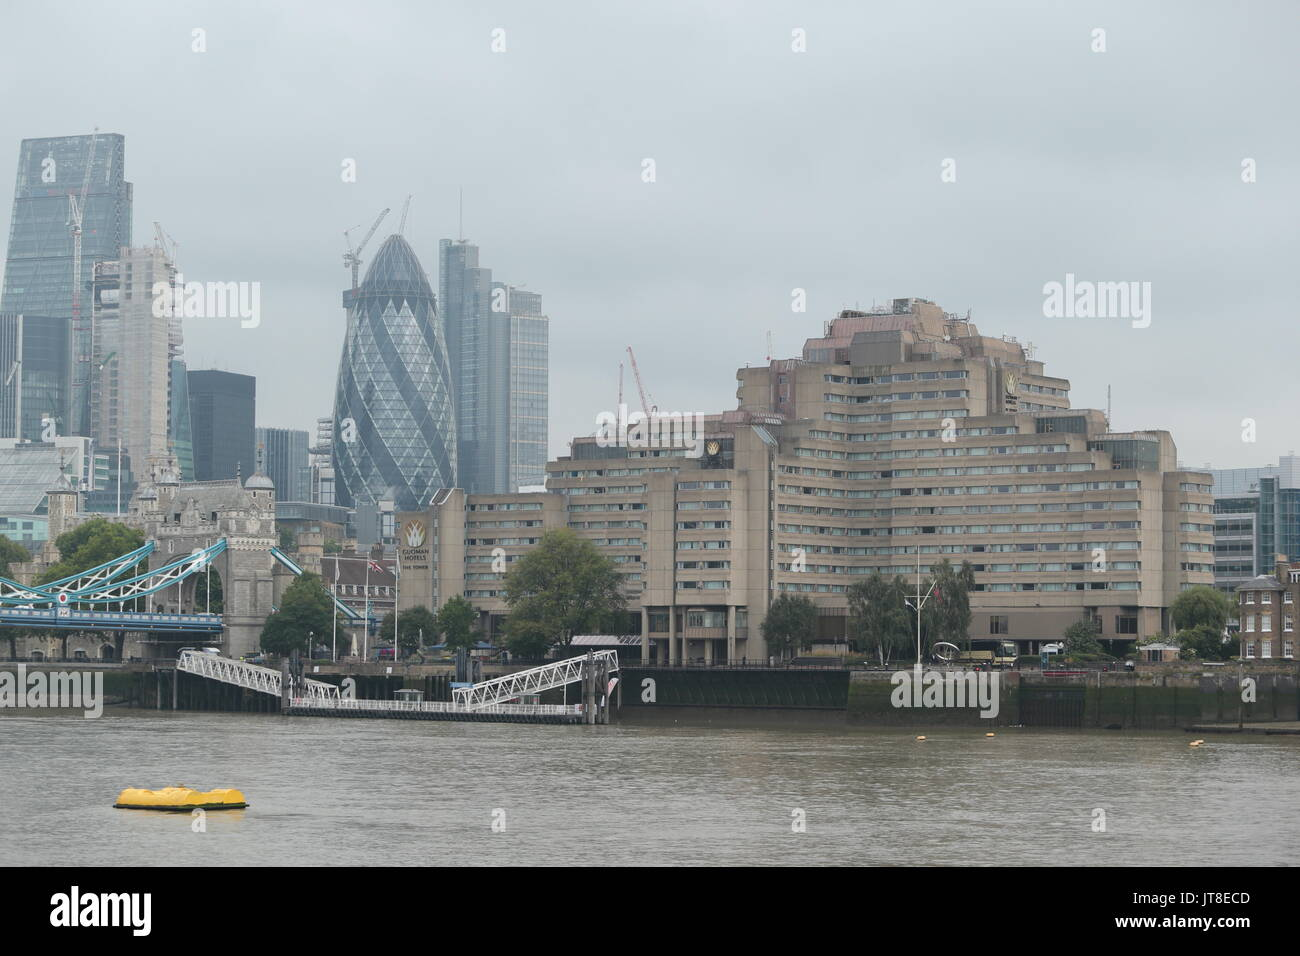 London, UK. 08th Aug, 2017. Gouman Hotels The Tower It has been confirmed by the IAAF that a vomiting bug outbreak had taken place at the Guoman Tower Hotel in Central London, A reported 12 athletes, were taken ill at the hotel. The hotel has denied it's to blame. The hotel on the River Thames sits next to the world famous Tower Bridge. Today picture. Credit: Nigel Bowles/Alamy Live News - Stock Image